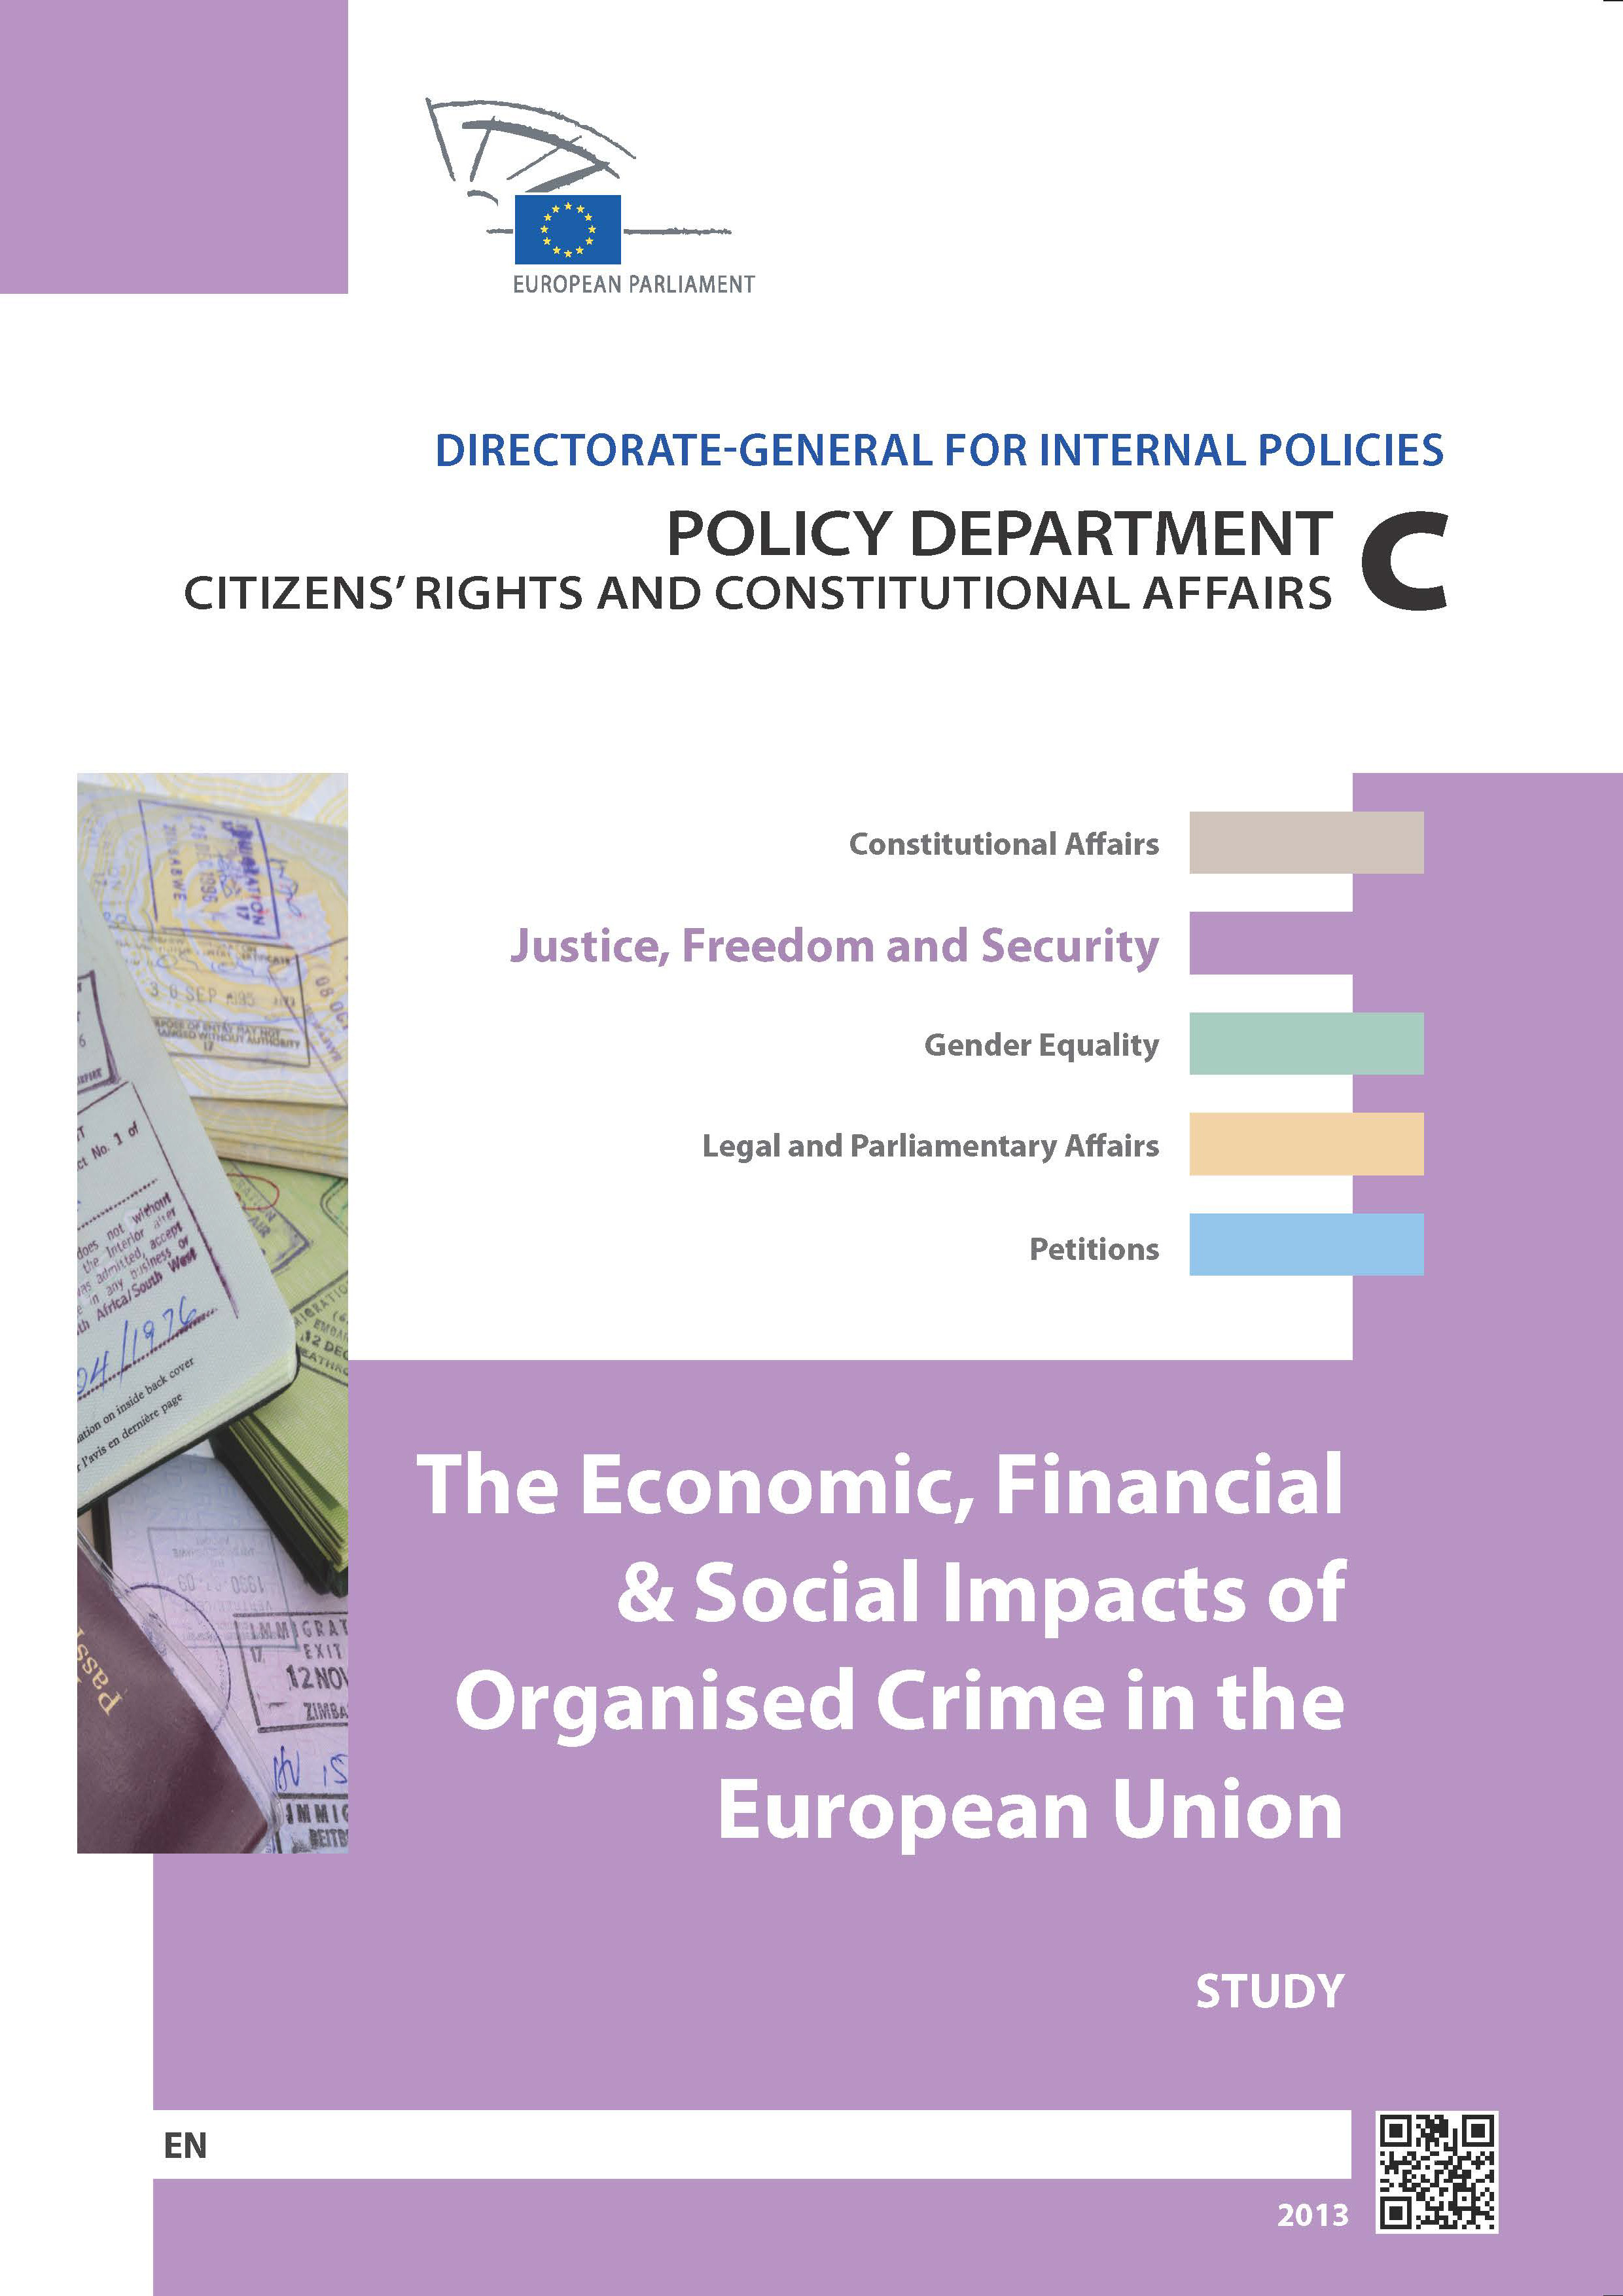 The Economic, Financial & Social Impacts of Organised Crime in the European Union